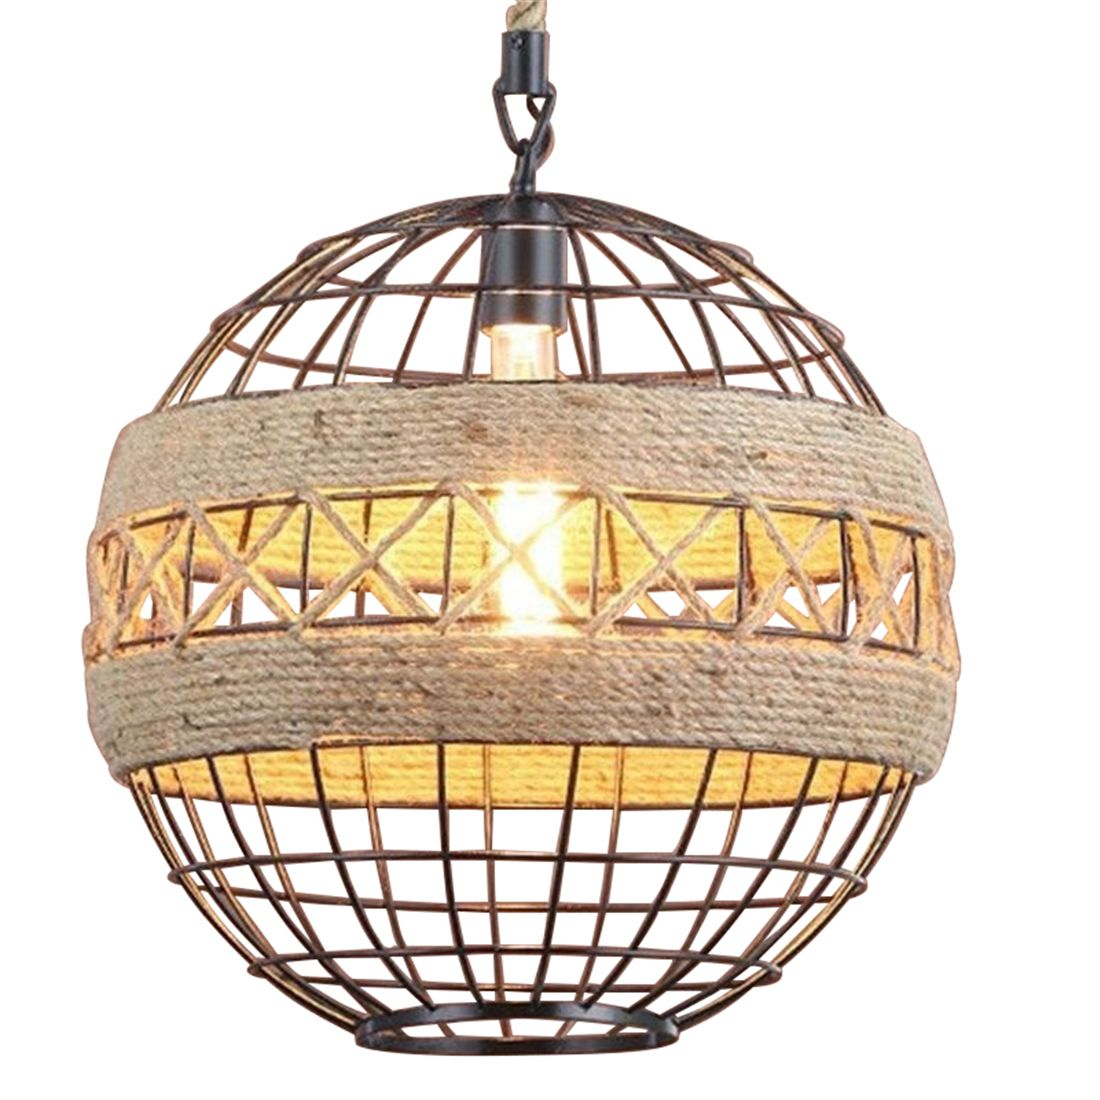 Country retro rope industrial wind chandelier Internet cafe restaurant cafe bar ball personalized lamps european rural bird marble hemp rope chandelier cafe restaurant corridor balcony chandelier size 33 38cm e27 ac110 240v